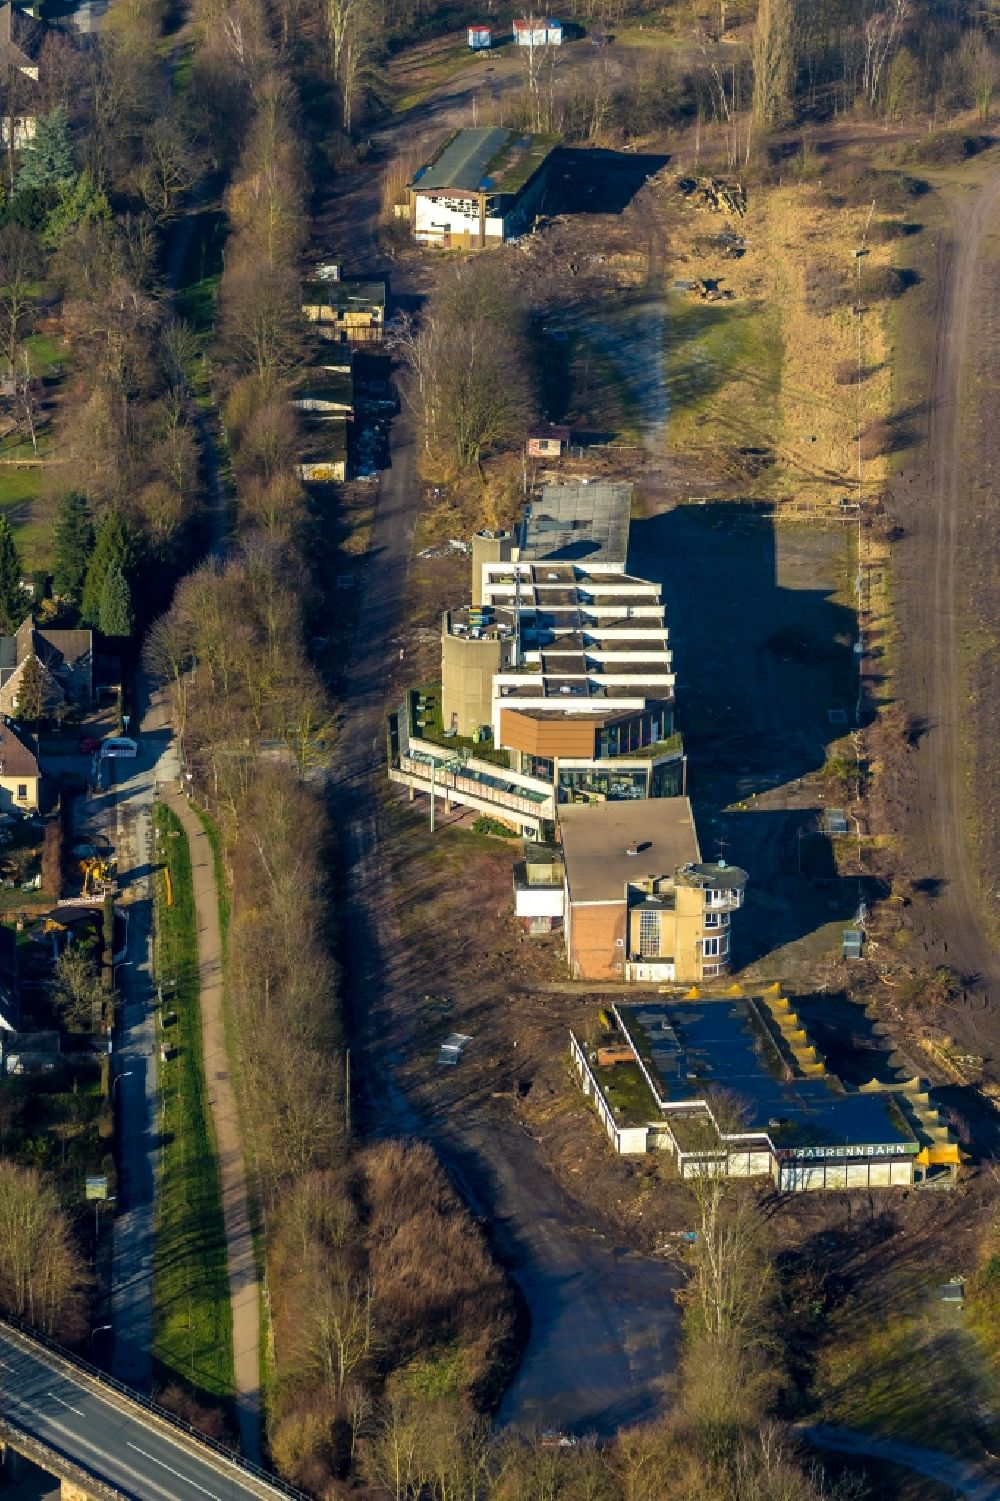 Recklinghausen from the bird's eye view: Development, demolition and renovation work on the site of the former racetrack - Trabrennbahn in Recklinghausen in the state North Rhine-Westphalia, Germany